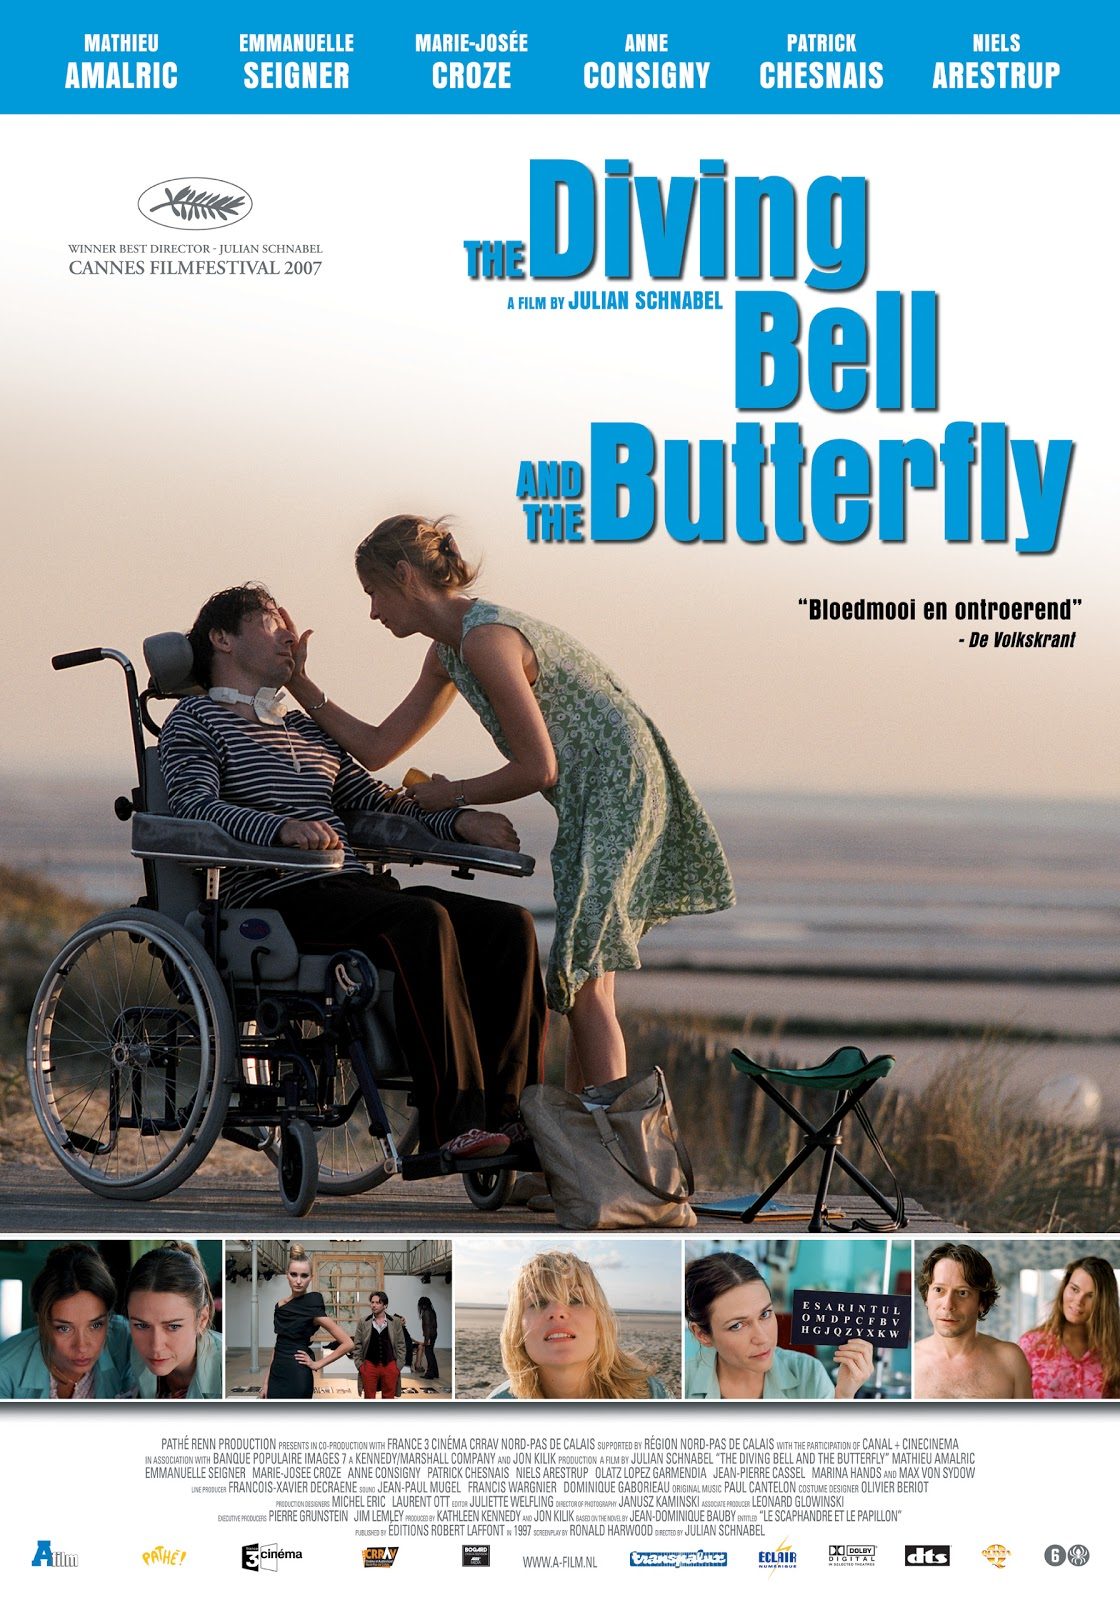 an analysis of julian schnabels perspective in the diving bell and the butterfly The diving bell and the butterfly artist/director julian schnabel's feature-film adaptation of the book was released in 2007, starring mathieu amalric as bauby.